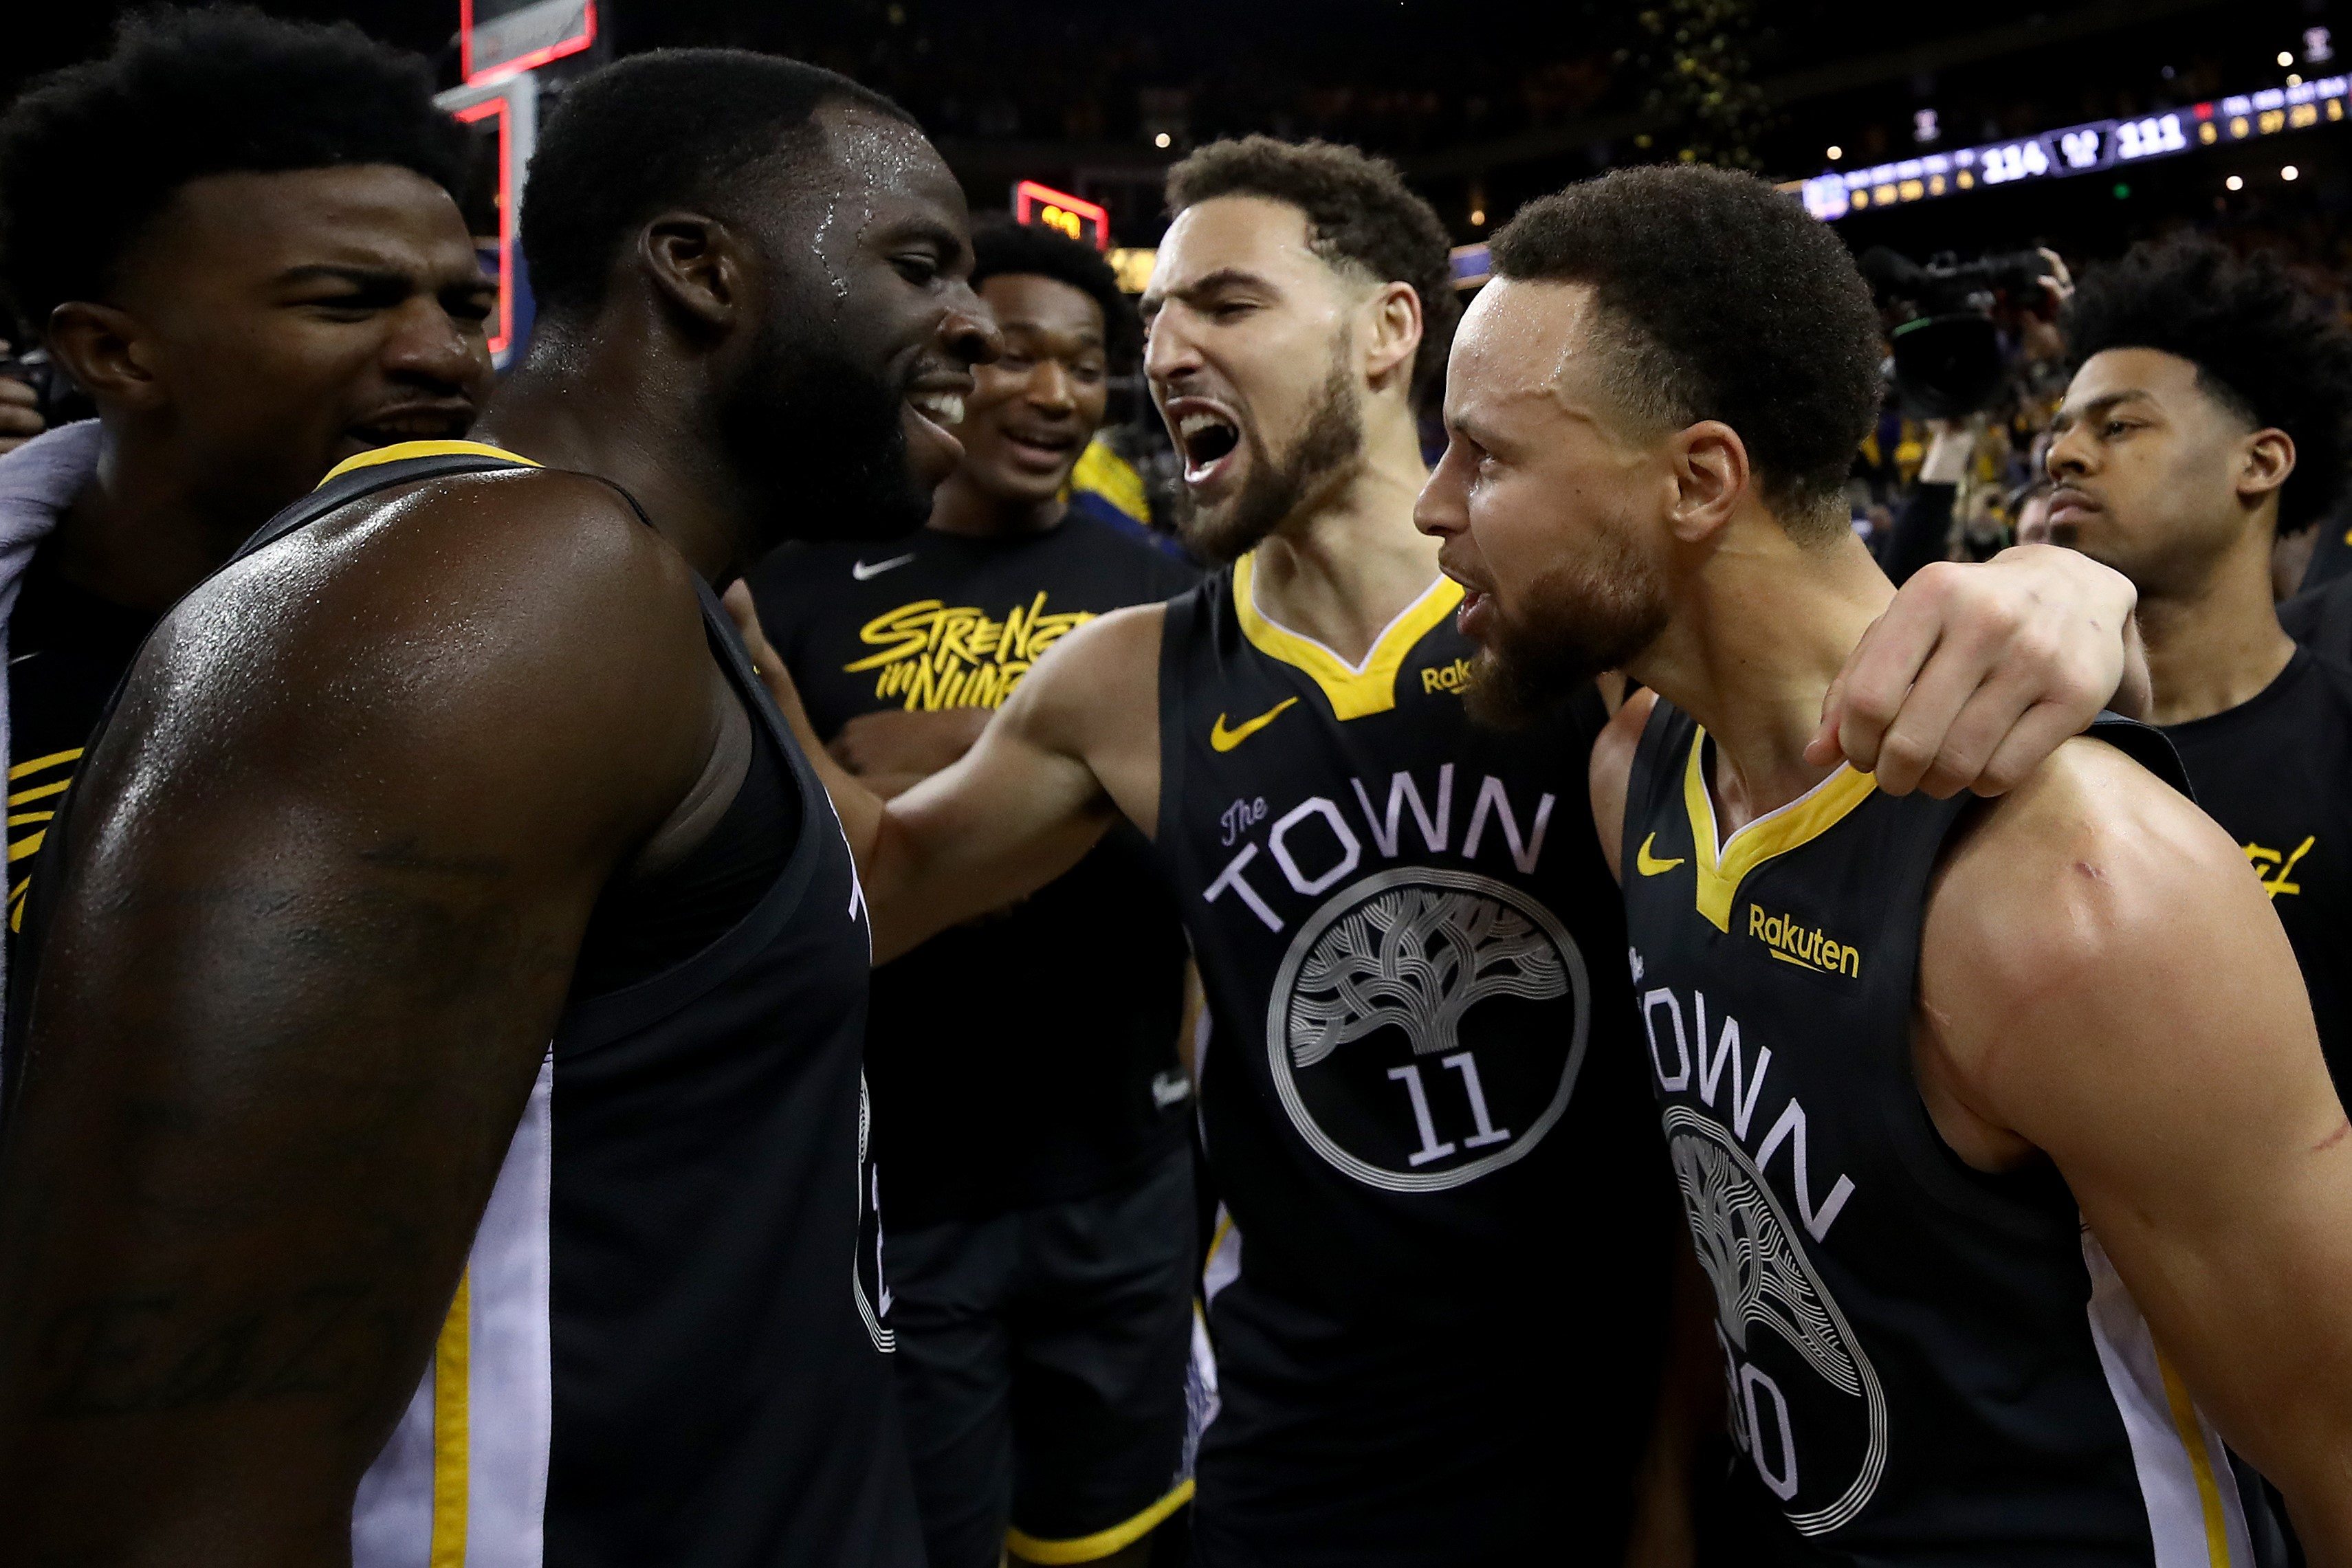 Stephen Curry #30, Klay Thompson #11 and Draymond Green #23 of the Golden State Warriors celebrate after defeating the Portland Trail Blazers 114-111 in game two of the NBA Western Conference Finals at ORACLE Arena on May 16, 2019 in Oakland